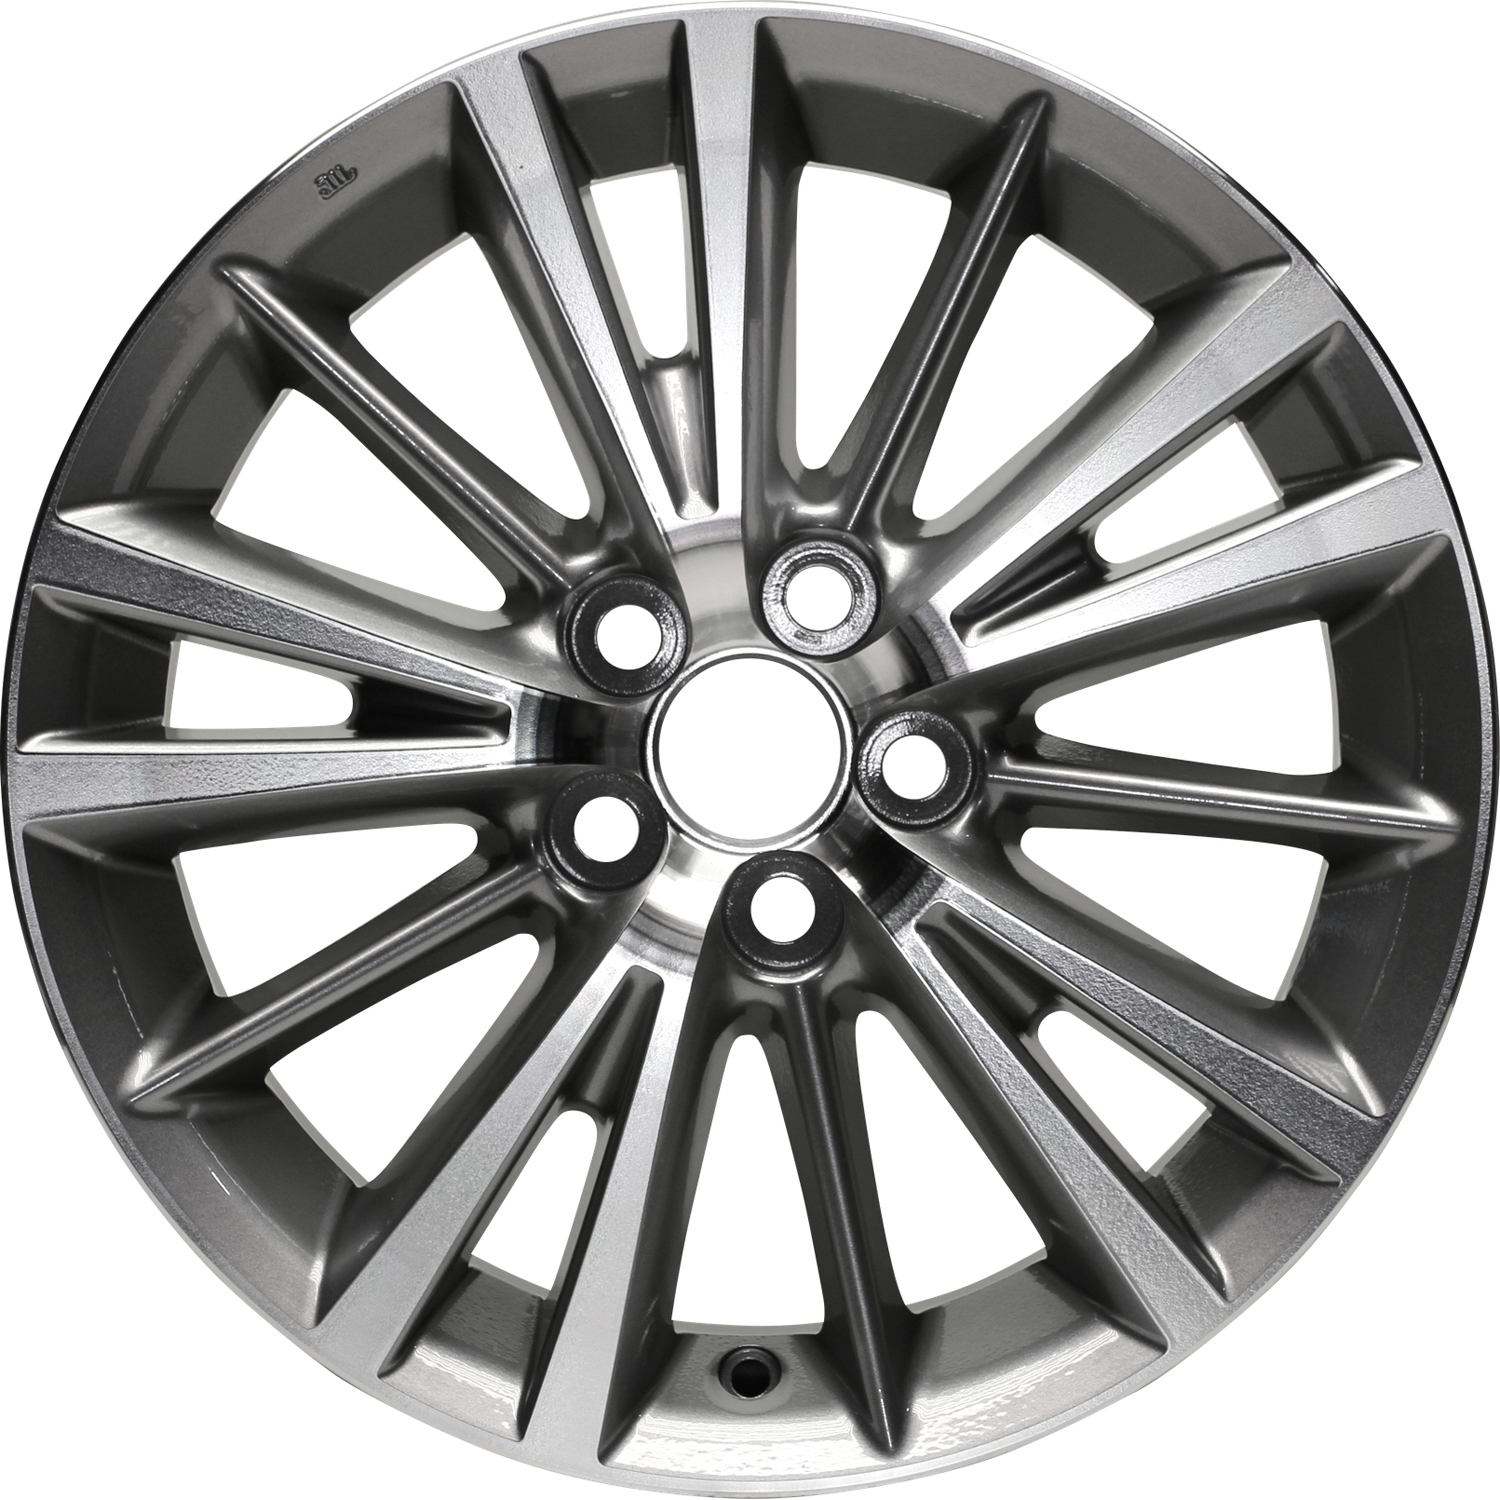 New Replacement 16 Alloy Wheel Rim For 2014 2015 2016 Toyota